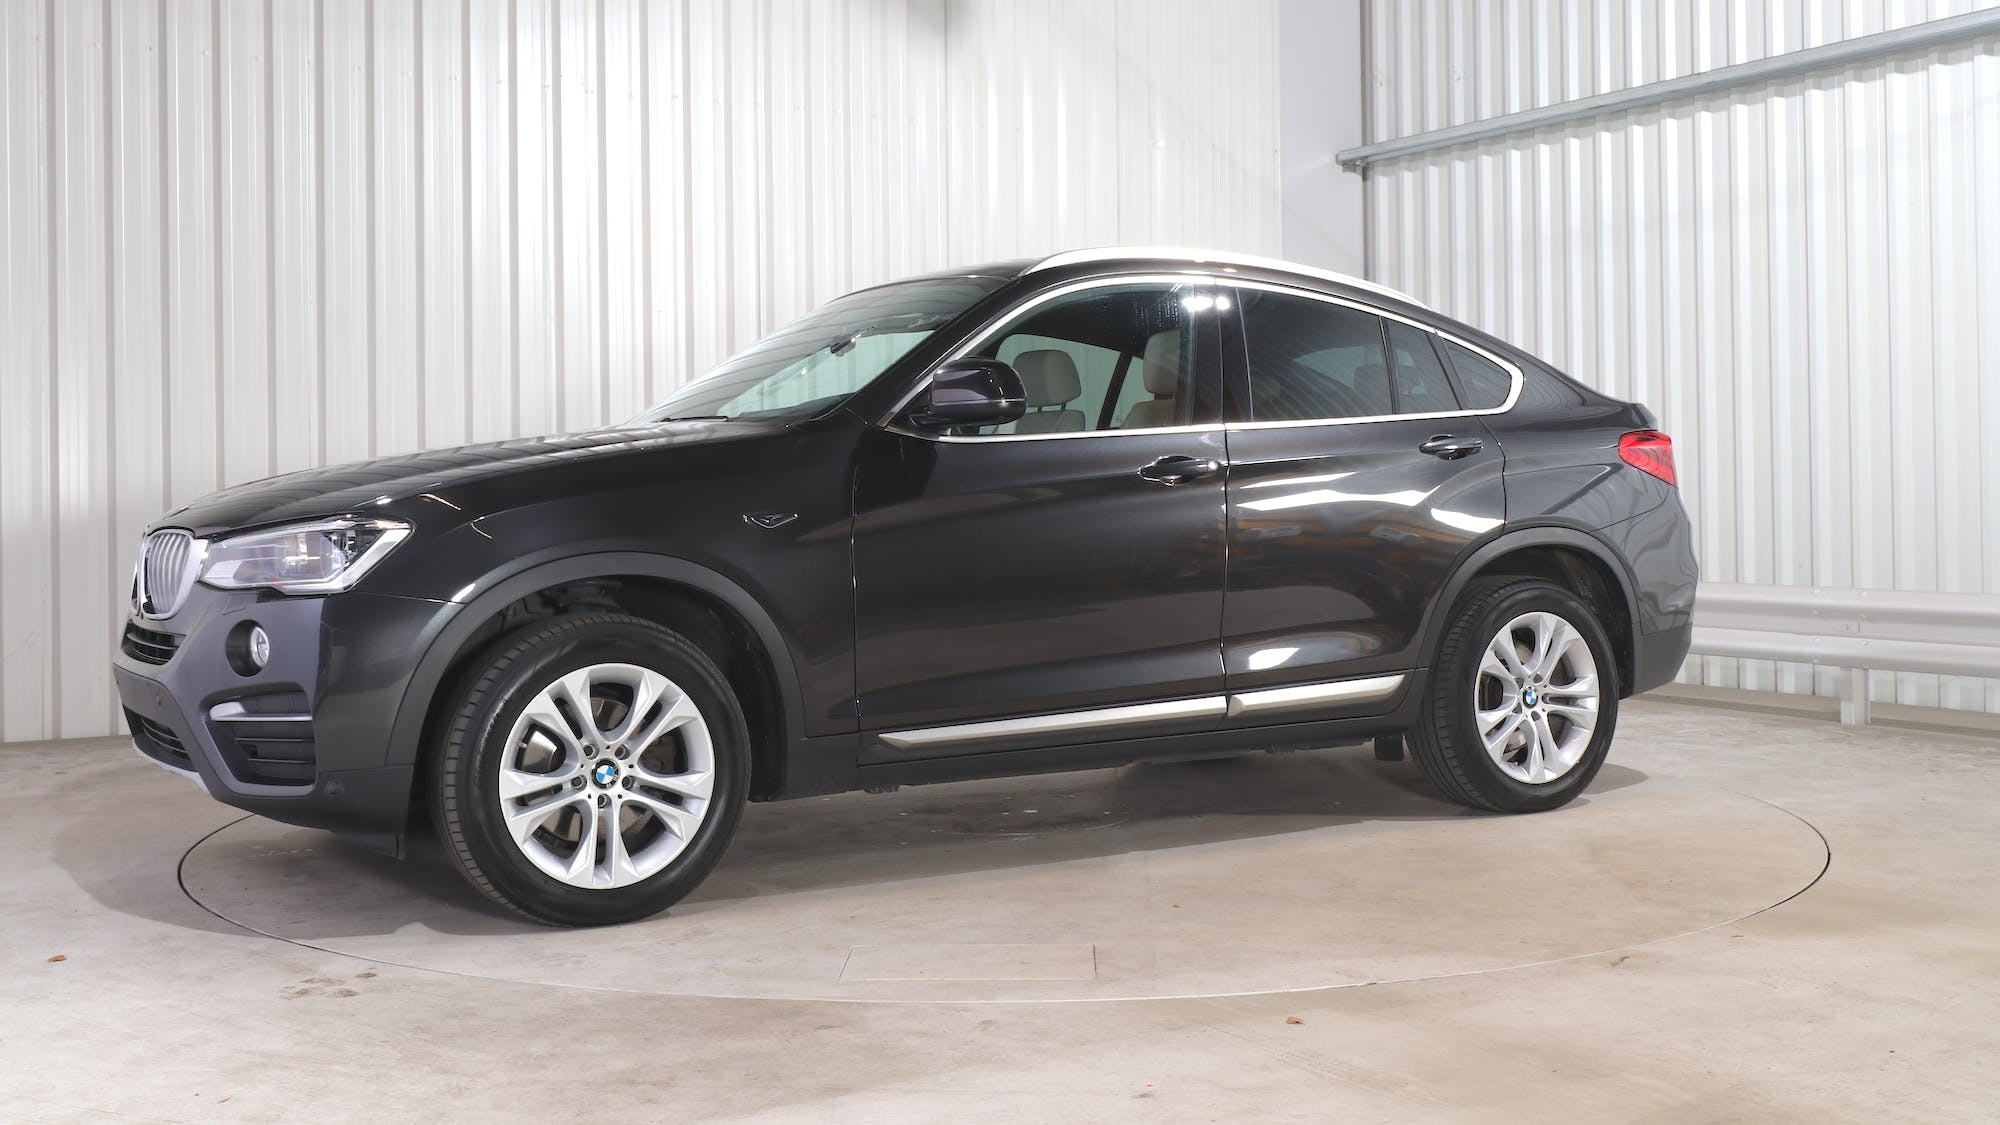 BMW X4 leasing exterior 1